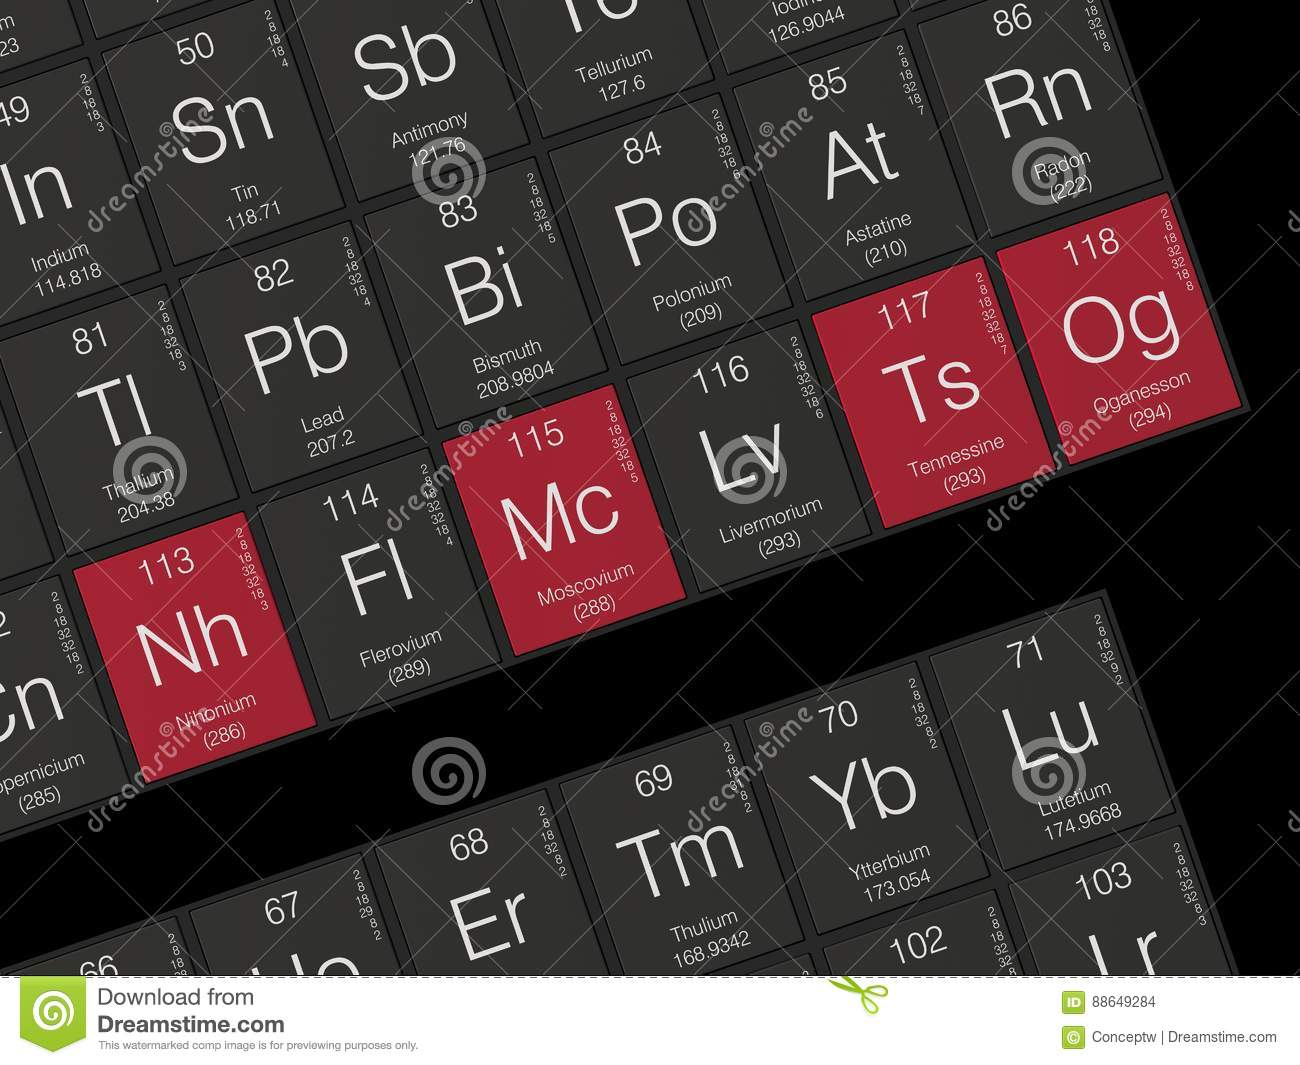 Periodic table 114 choice image periodic table images 114 element periodic table images periodic table images 114 element periodic table choice image periodic table gamestrikefo Images